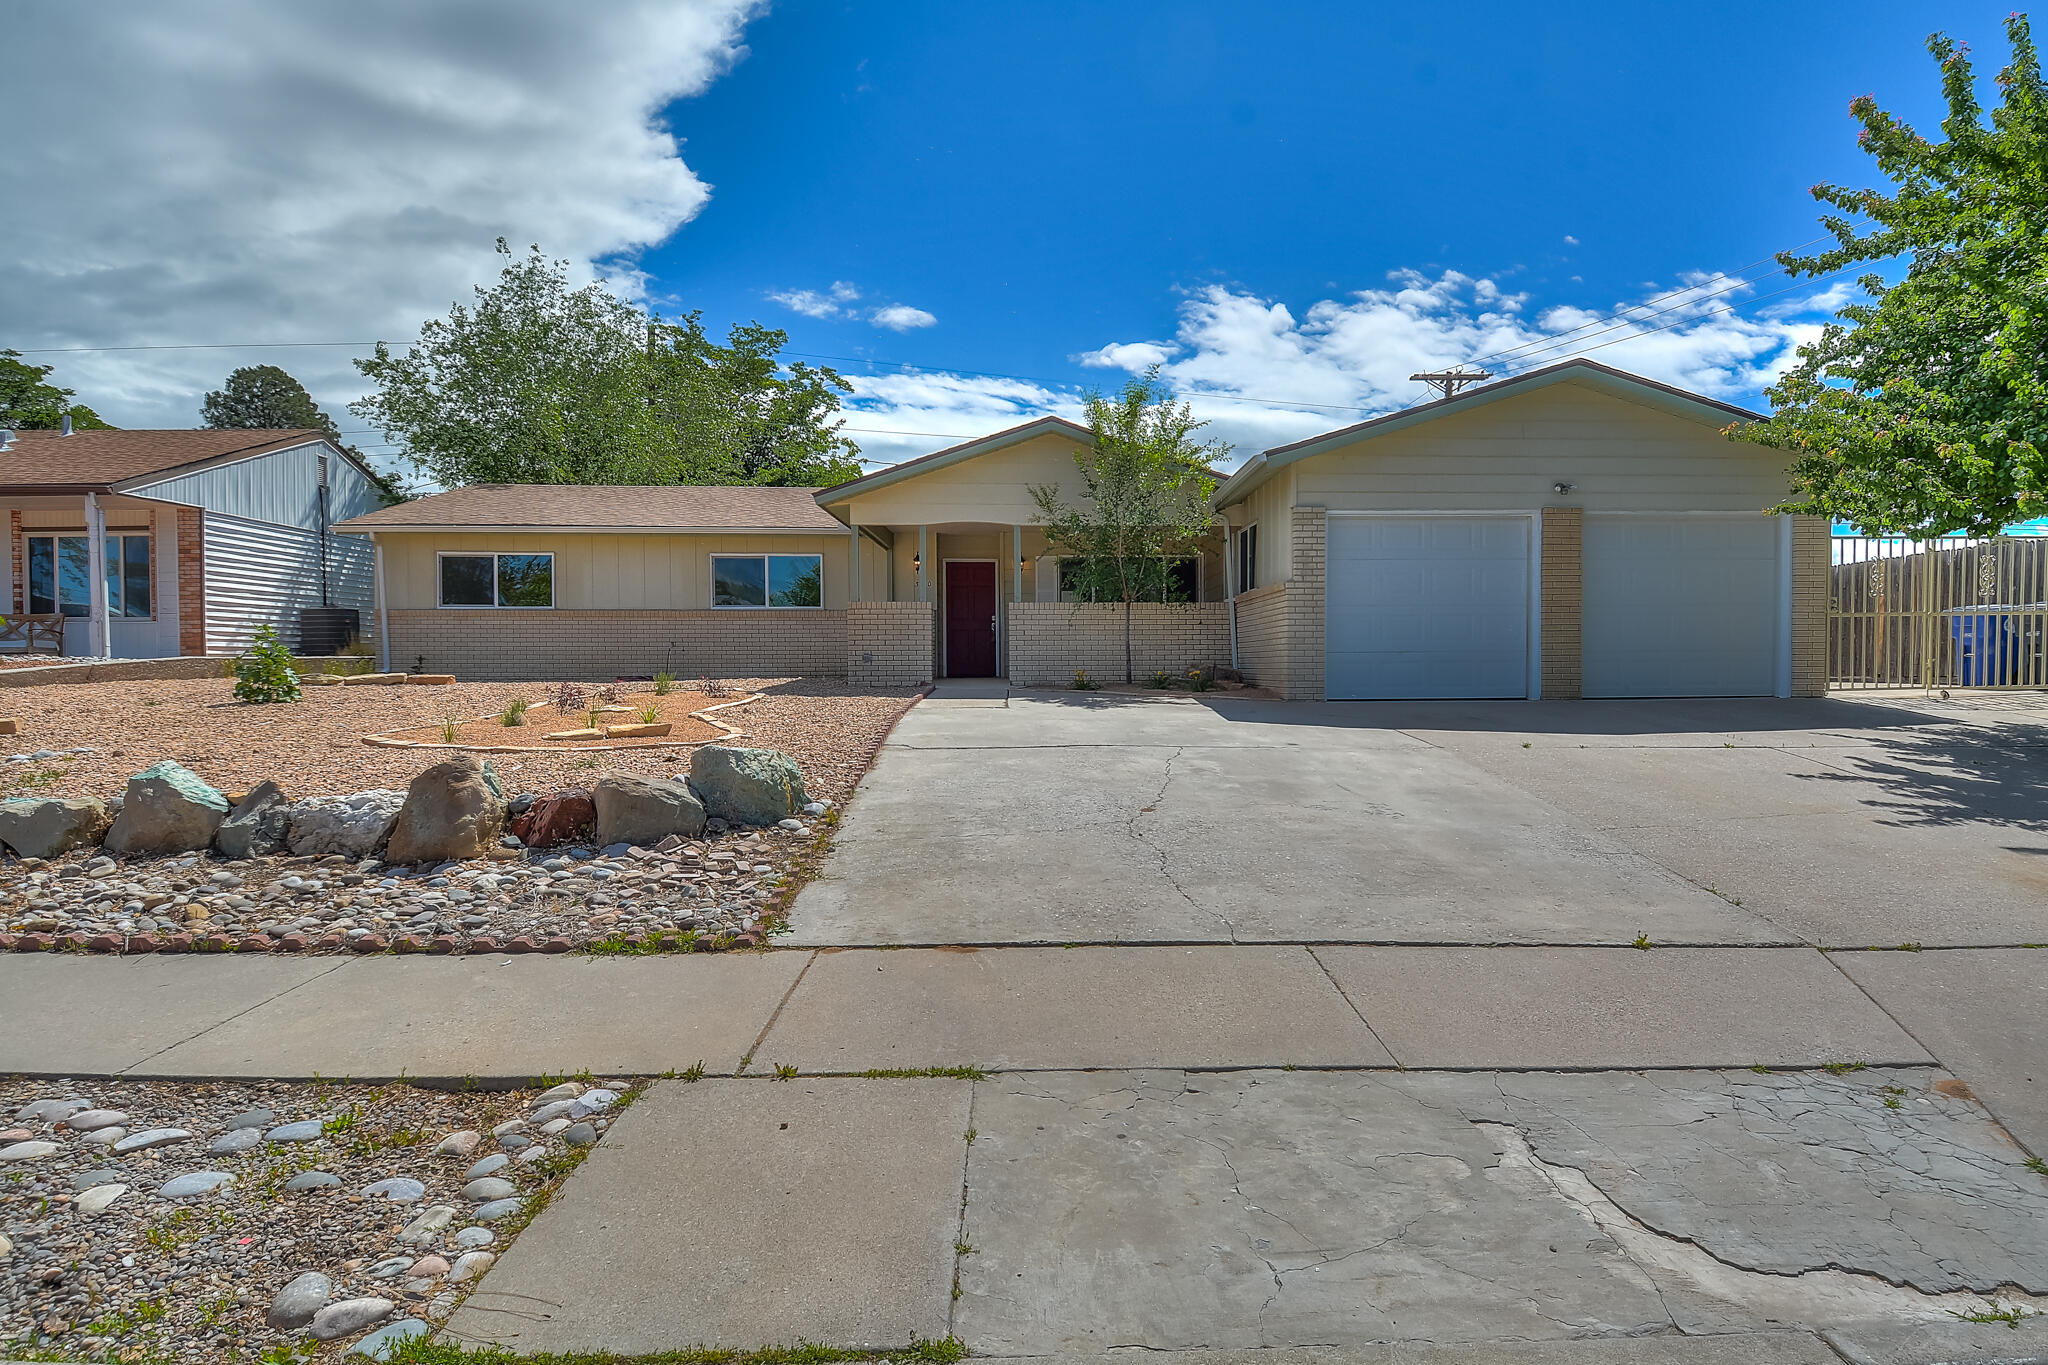 Completely Remodeled Charmer on Large Corner Lot! Come See this Super Clean Well Done Updated Home in The Heart Of Albuquerque.Featuring:New Roof, Newer Dual Pane Windows & Sliders,Newer Carpet in Bedrooms,Newer Tile in Bathrooms,Newer Laminate Bamboo Flooring,Newer Textured and Painted Ceilings,Fresh Paint,Updated Wood Burning Fire Place, Newer Fixtures Throughout and a Two Car Garage.Enlarged Kitchen Includes Newer Cabinets,Beautiful Granite Counters with Tiled Backsplash,Newer Stainless Steel Appliances; a Gas Cooktop/Oven, Microwave,and Dishwasher.This Bright & Open Floor Plan Has 4BR,2BA,Two Spacious Living Areas,& Laundry Room.Master & Hall Bathrooms Received Major Updates Including Custom Tiled Showers.Large Side For RV & Back Yard W/Built In BBQ Pit!All In Desirable School District